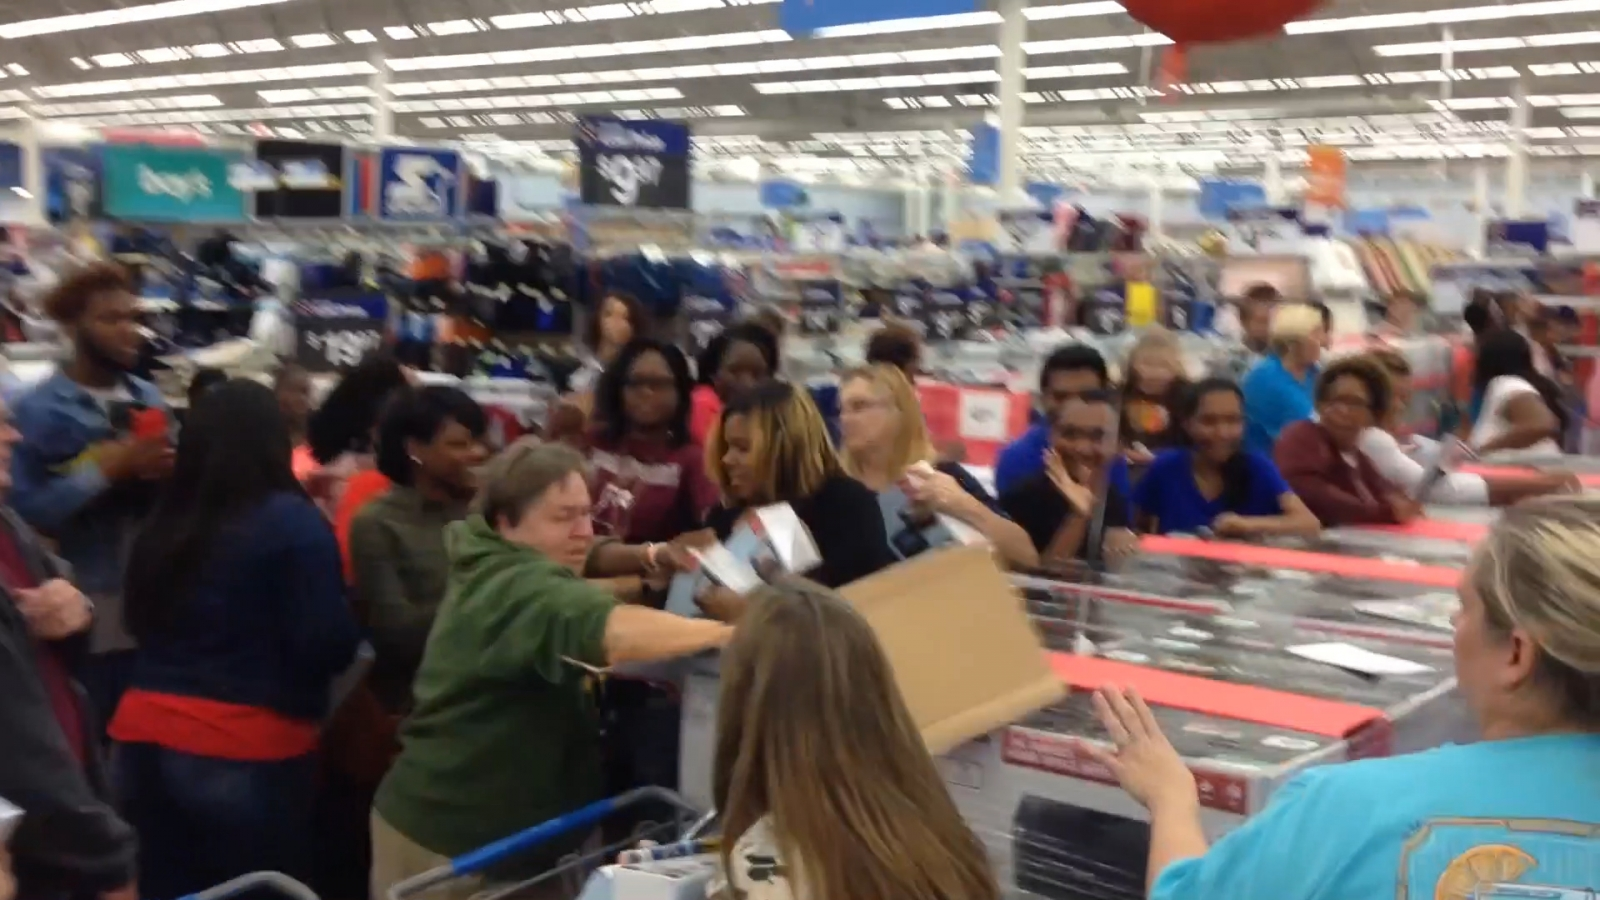 Rowdy Walmart shoppers fight for DVD player ahead of Black Friday